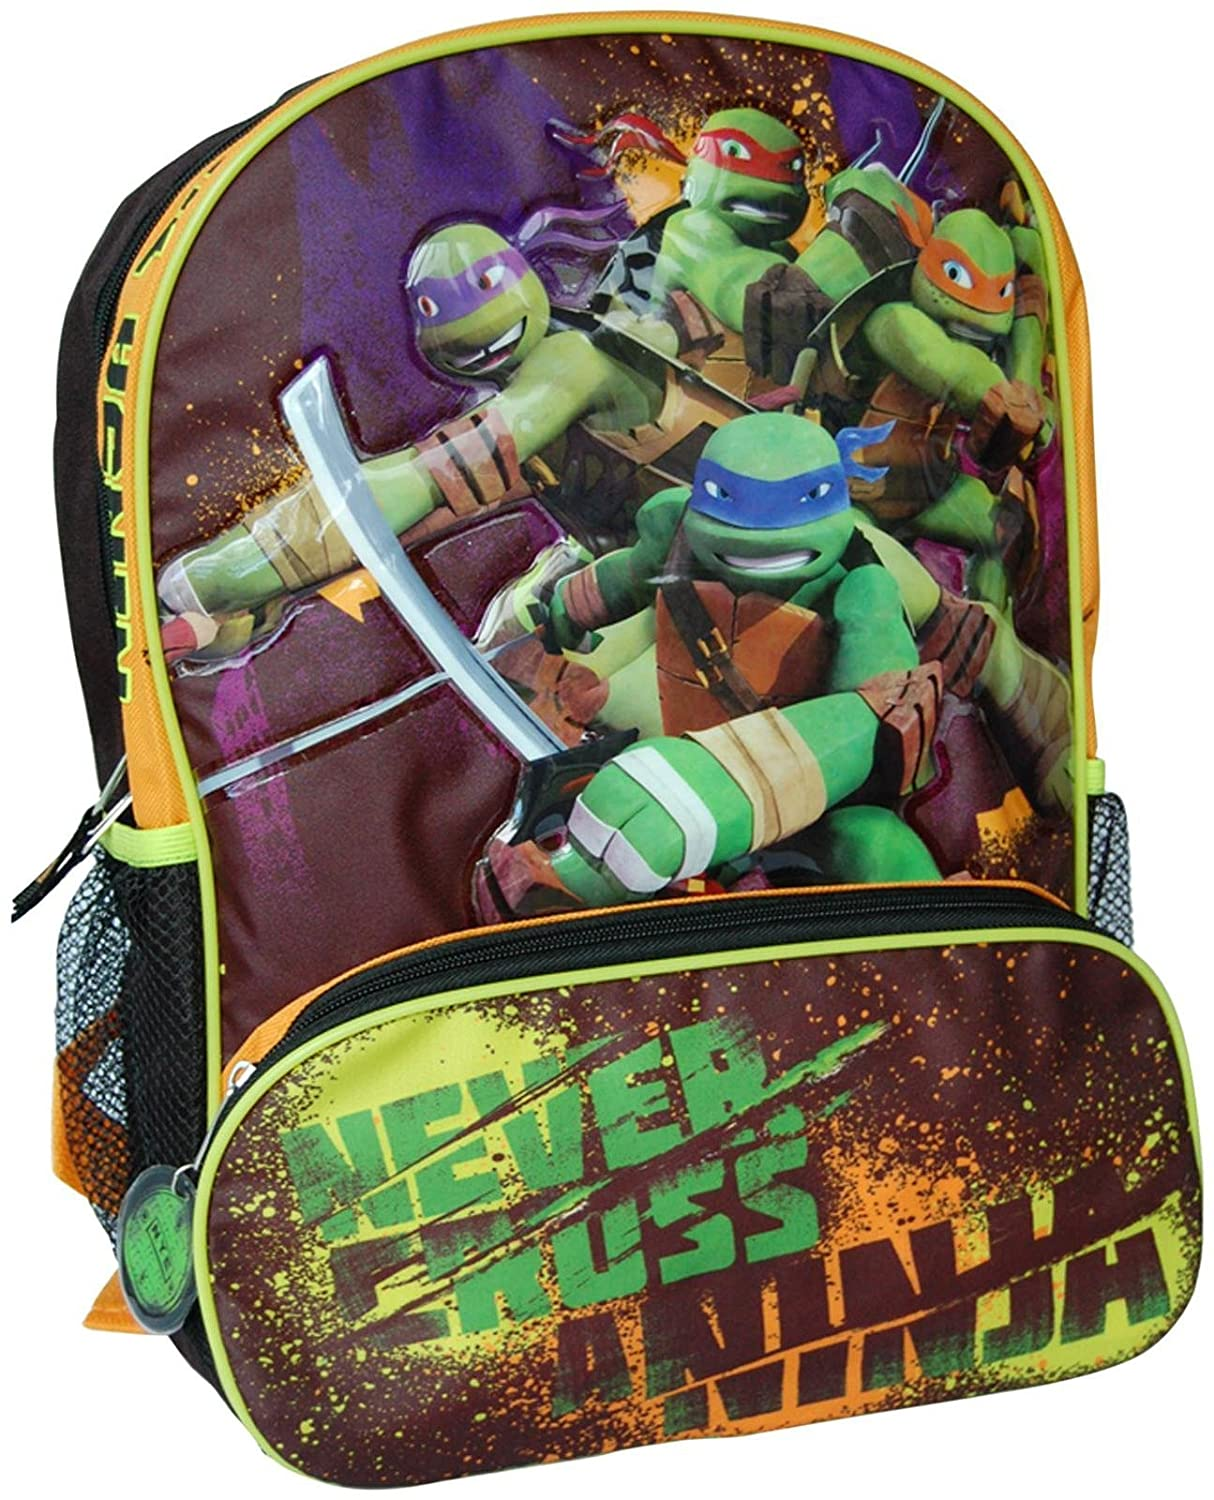 Long Tail Products TMNT Backpack Longtail Enterprises VGA-012